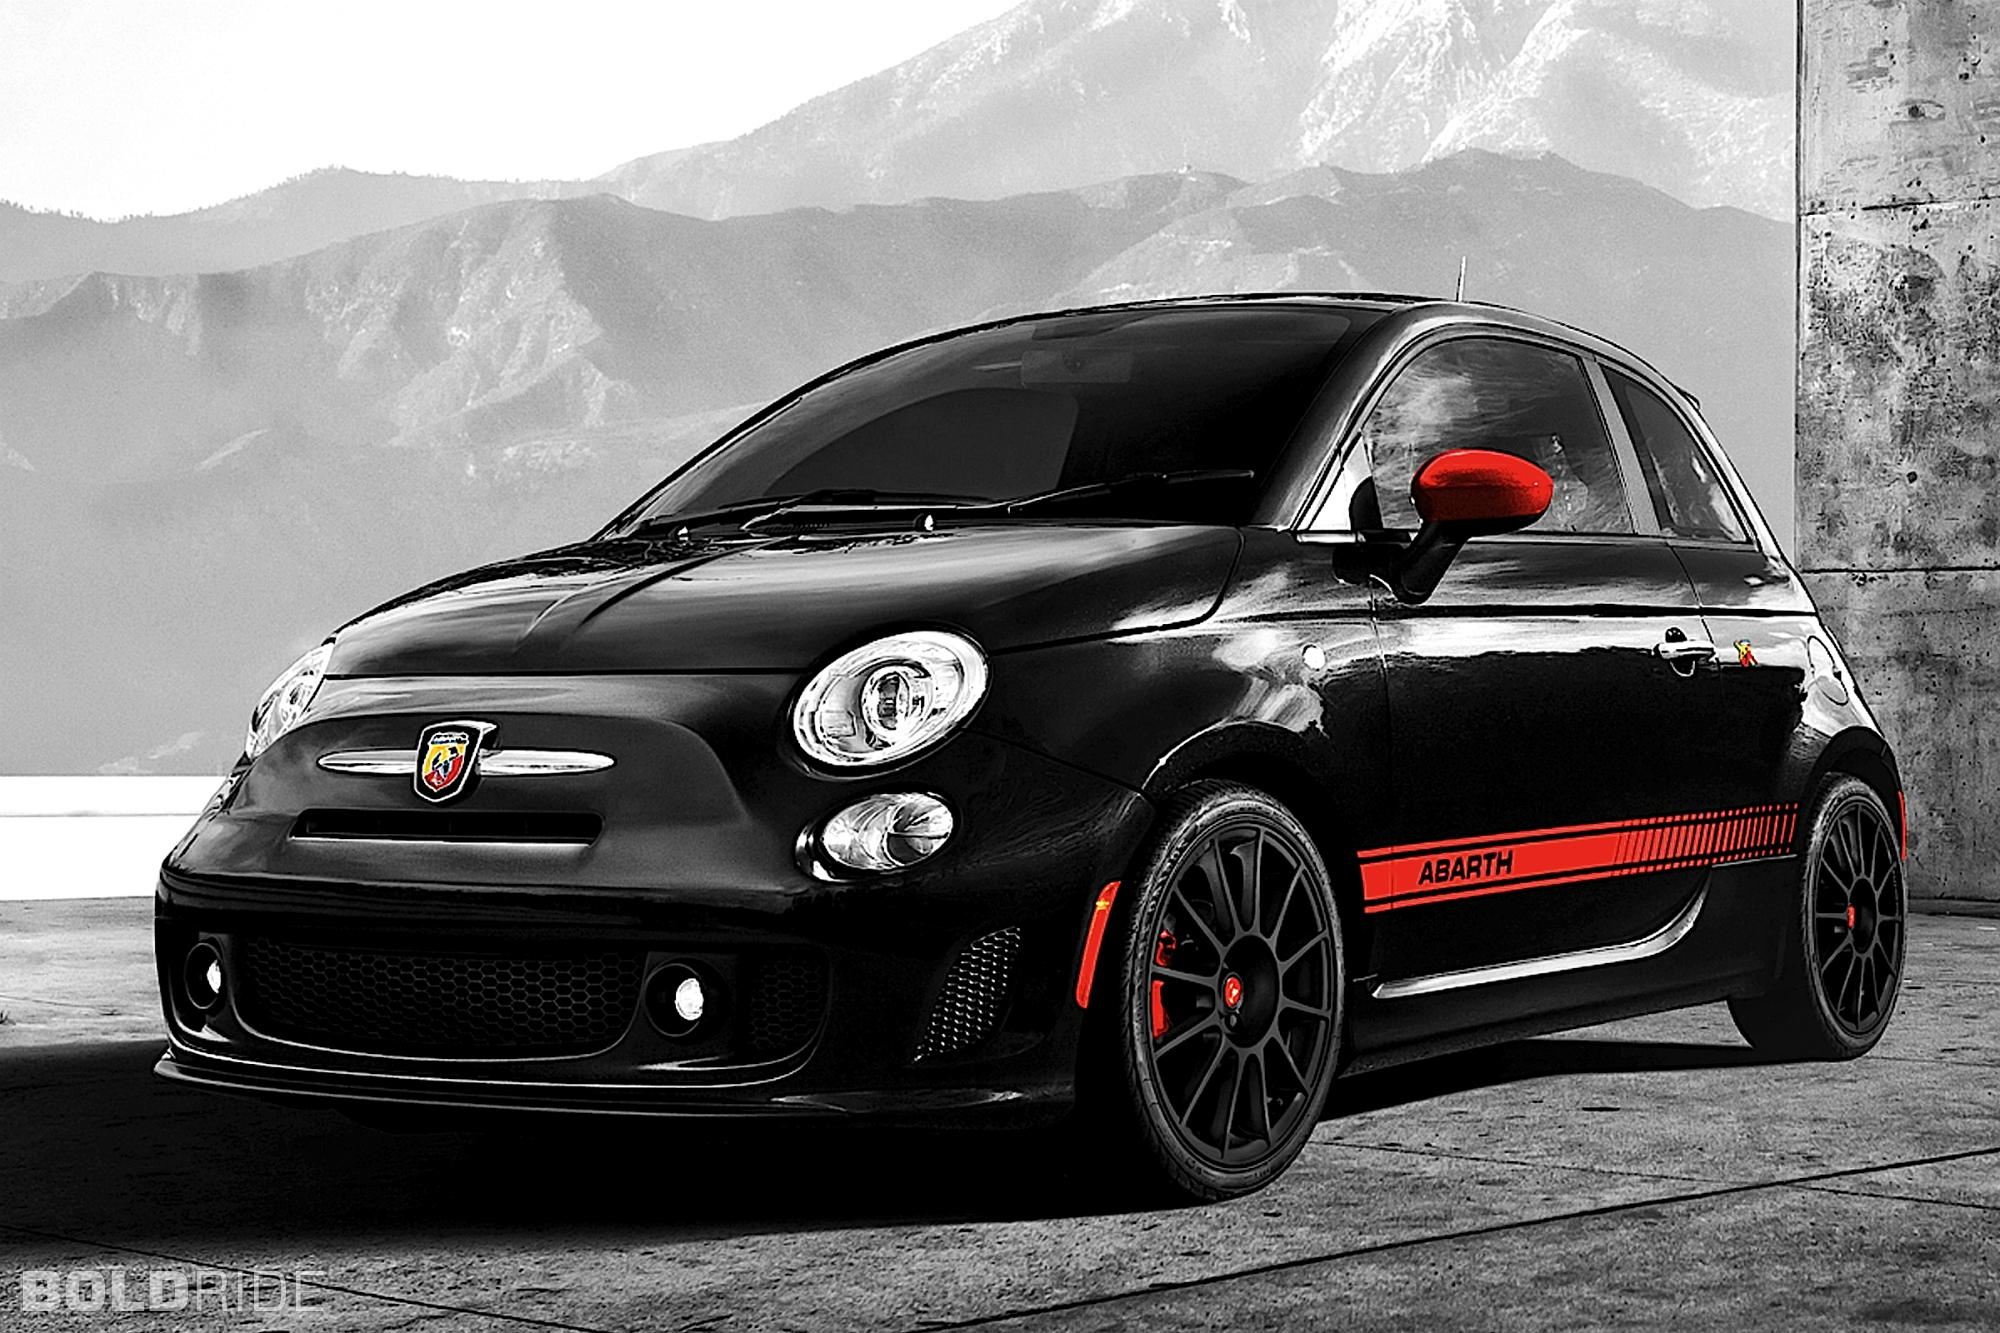 Abarth fiat photo - 1